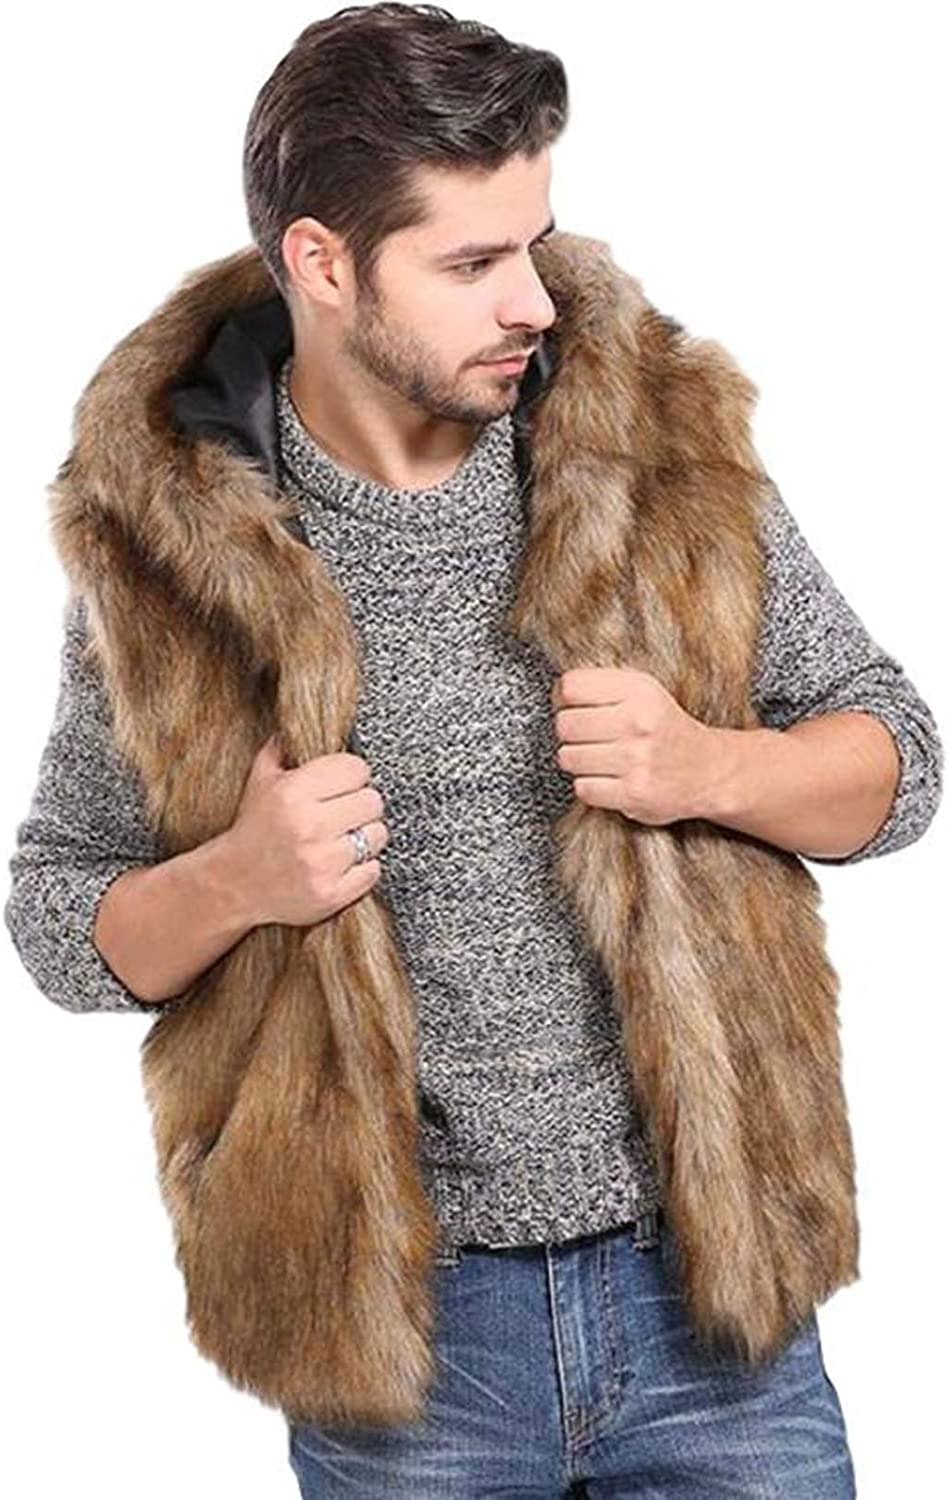 Idopy Winter gift Men`s Faux Fur Sleeveless Courier shipping free shipping Coat Gilet Vest Jacket